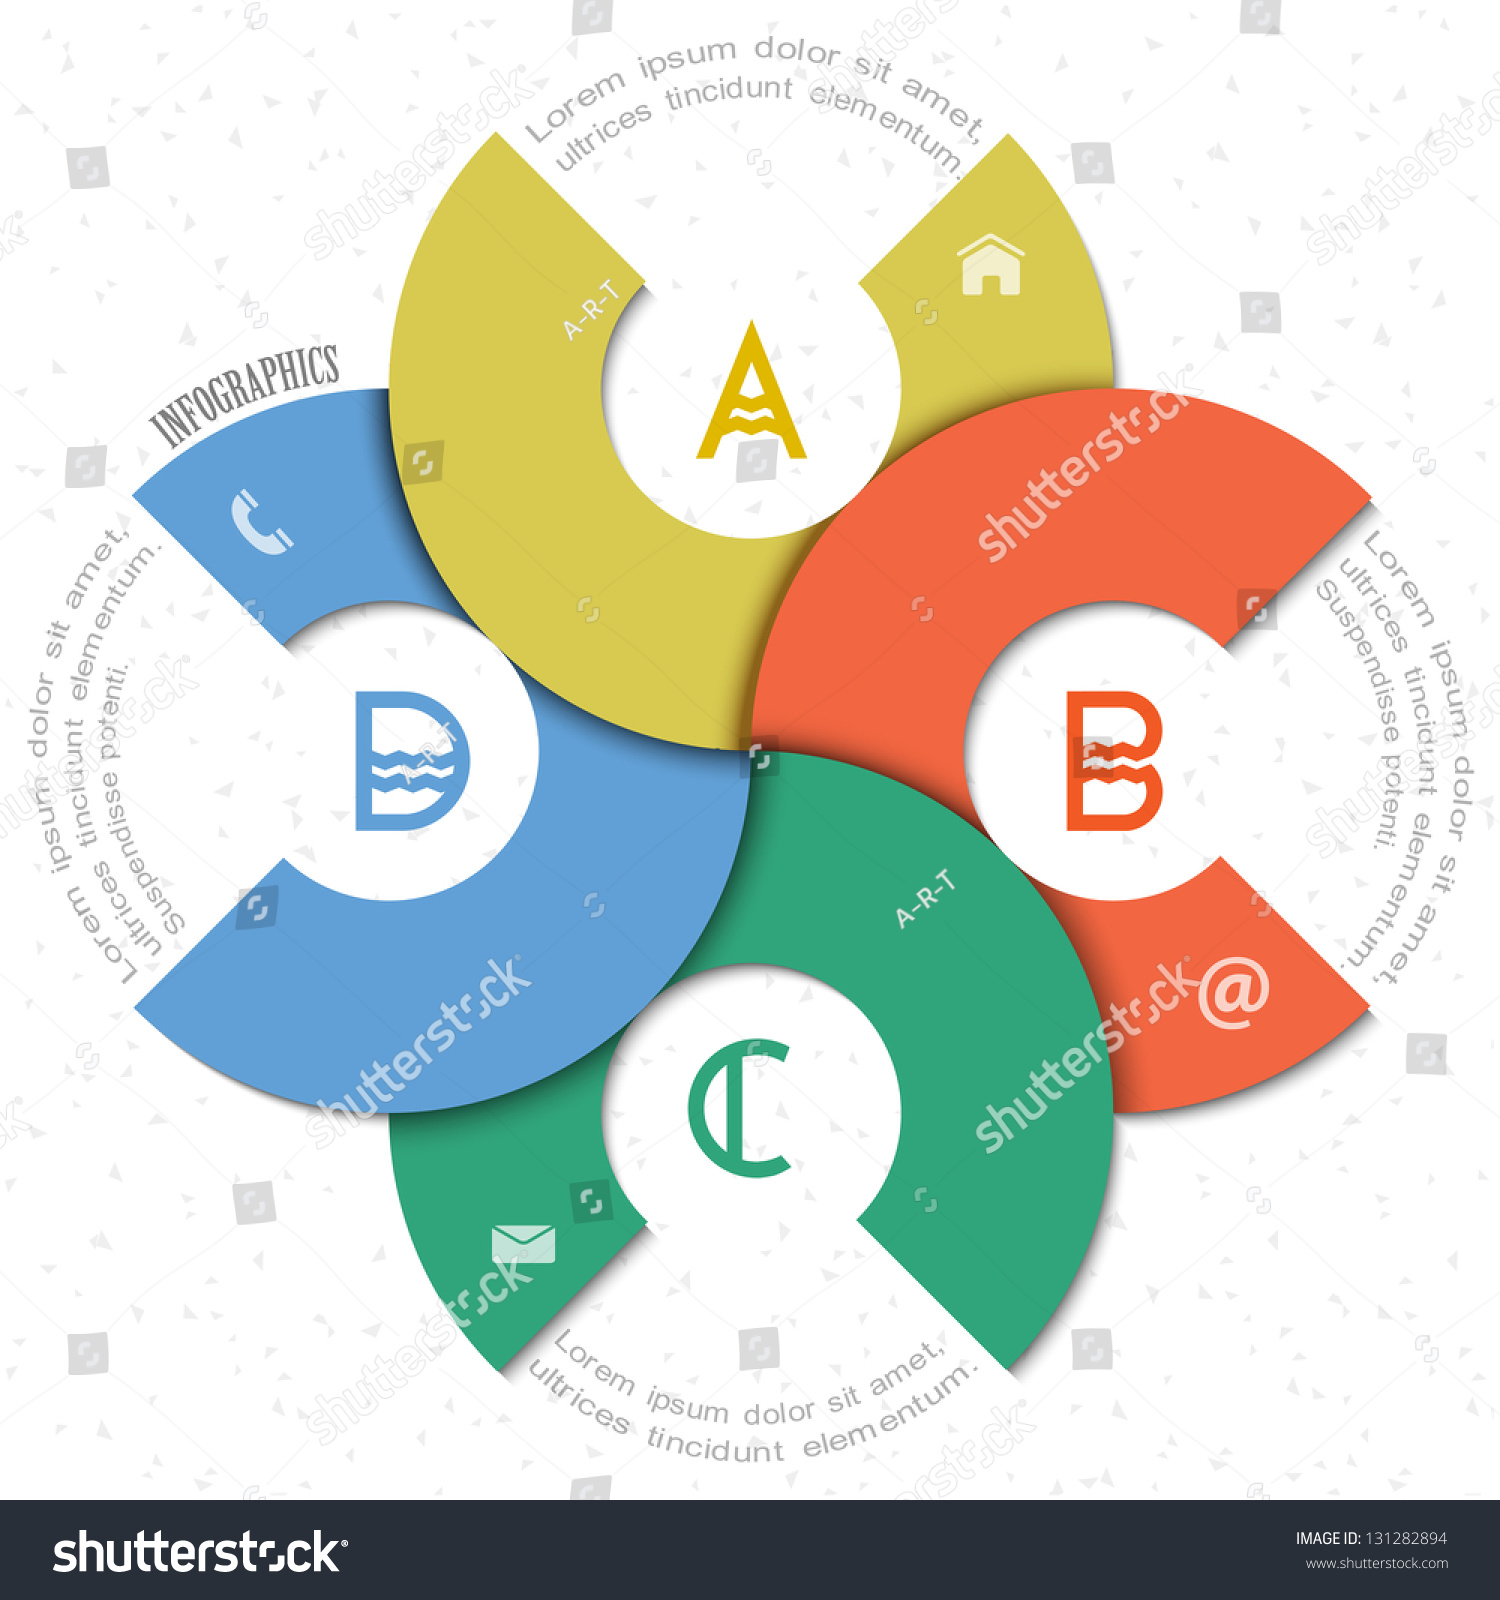 creative round design template infographics website stock vector creative round design template for infographics and website templates or design graphic for business vector